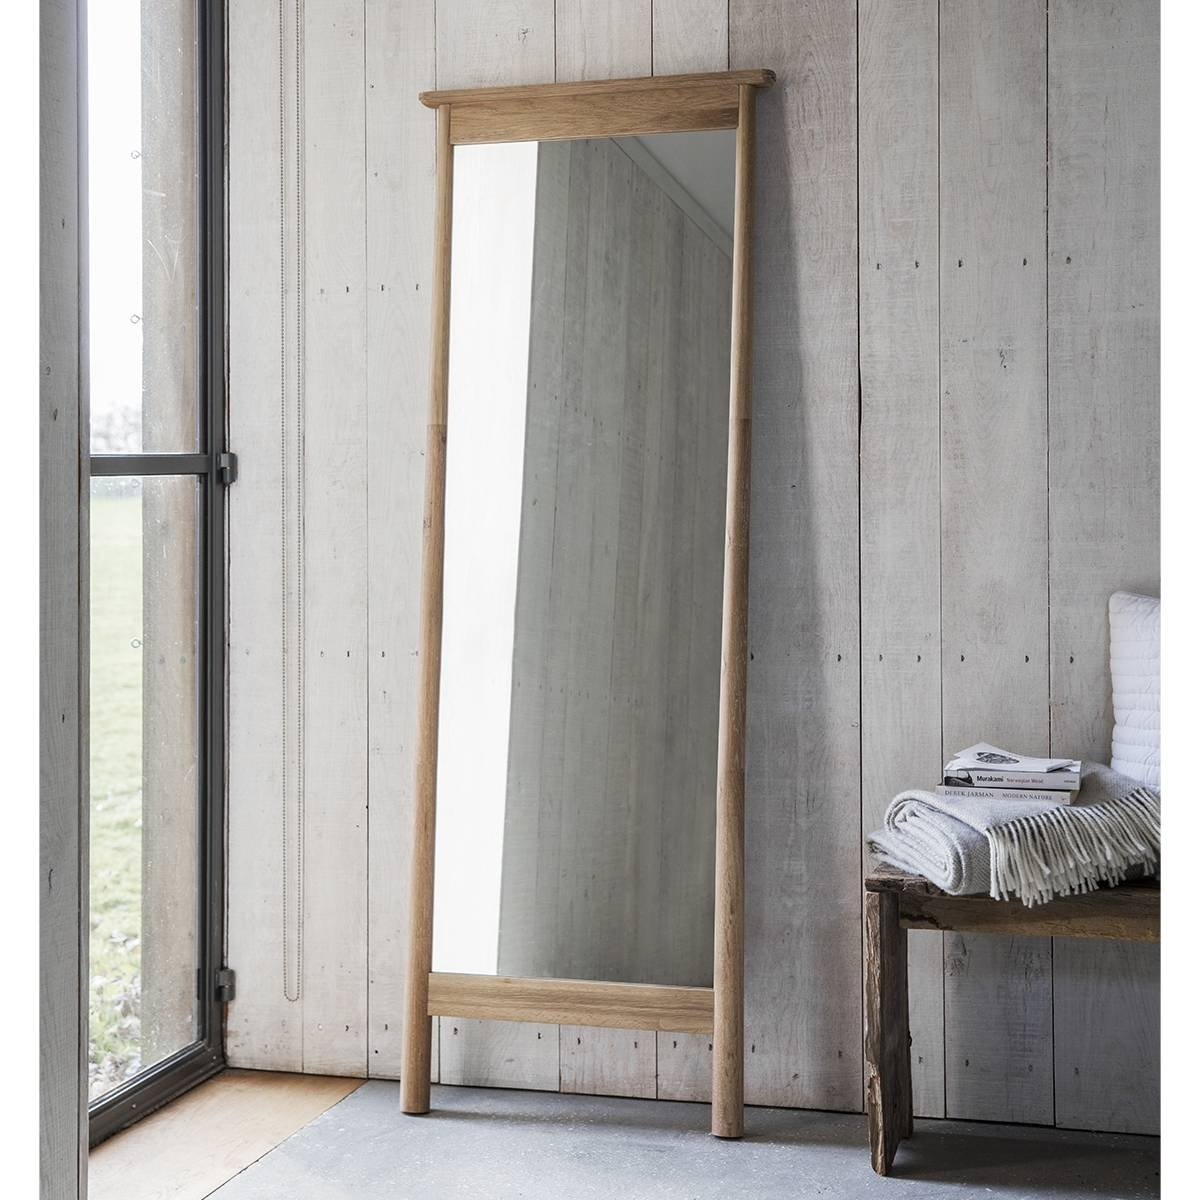 Wooden Framed Leaner Mirror 174 X 64Cm Wooden Framed Leaner Mirror pertaining to Full Length Cheval Mirrors (Image 24 of 25)